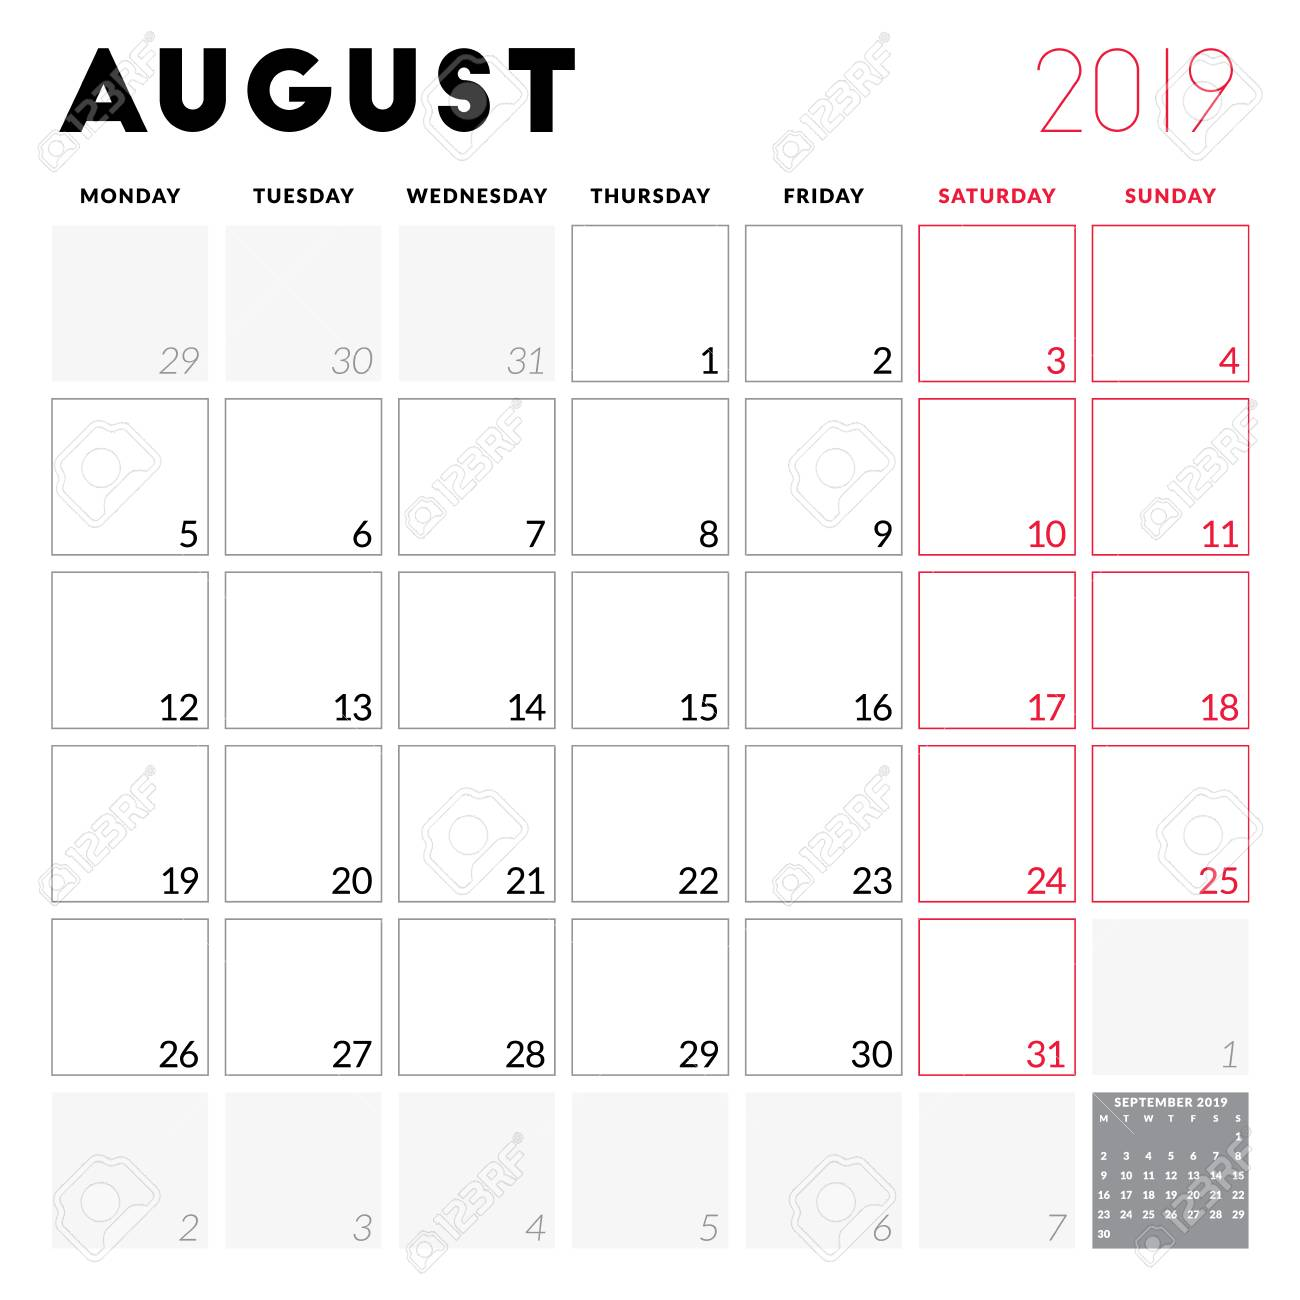 August 2019 Calendar Printable Monday Start.Calendar Planner For August 2019 Week Starts On Monday Printable